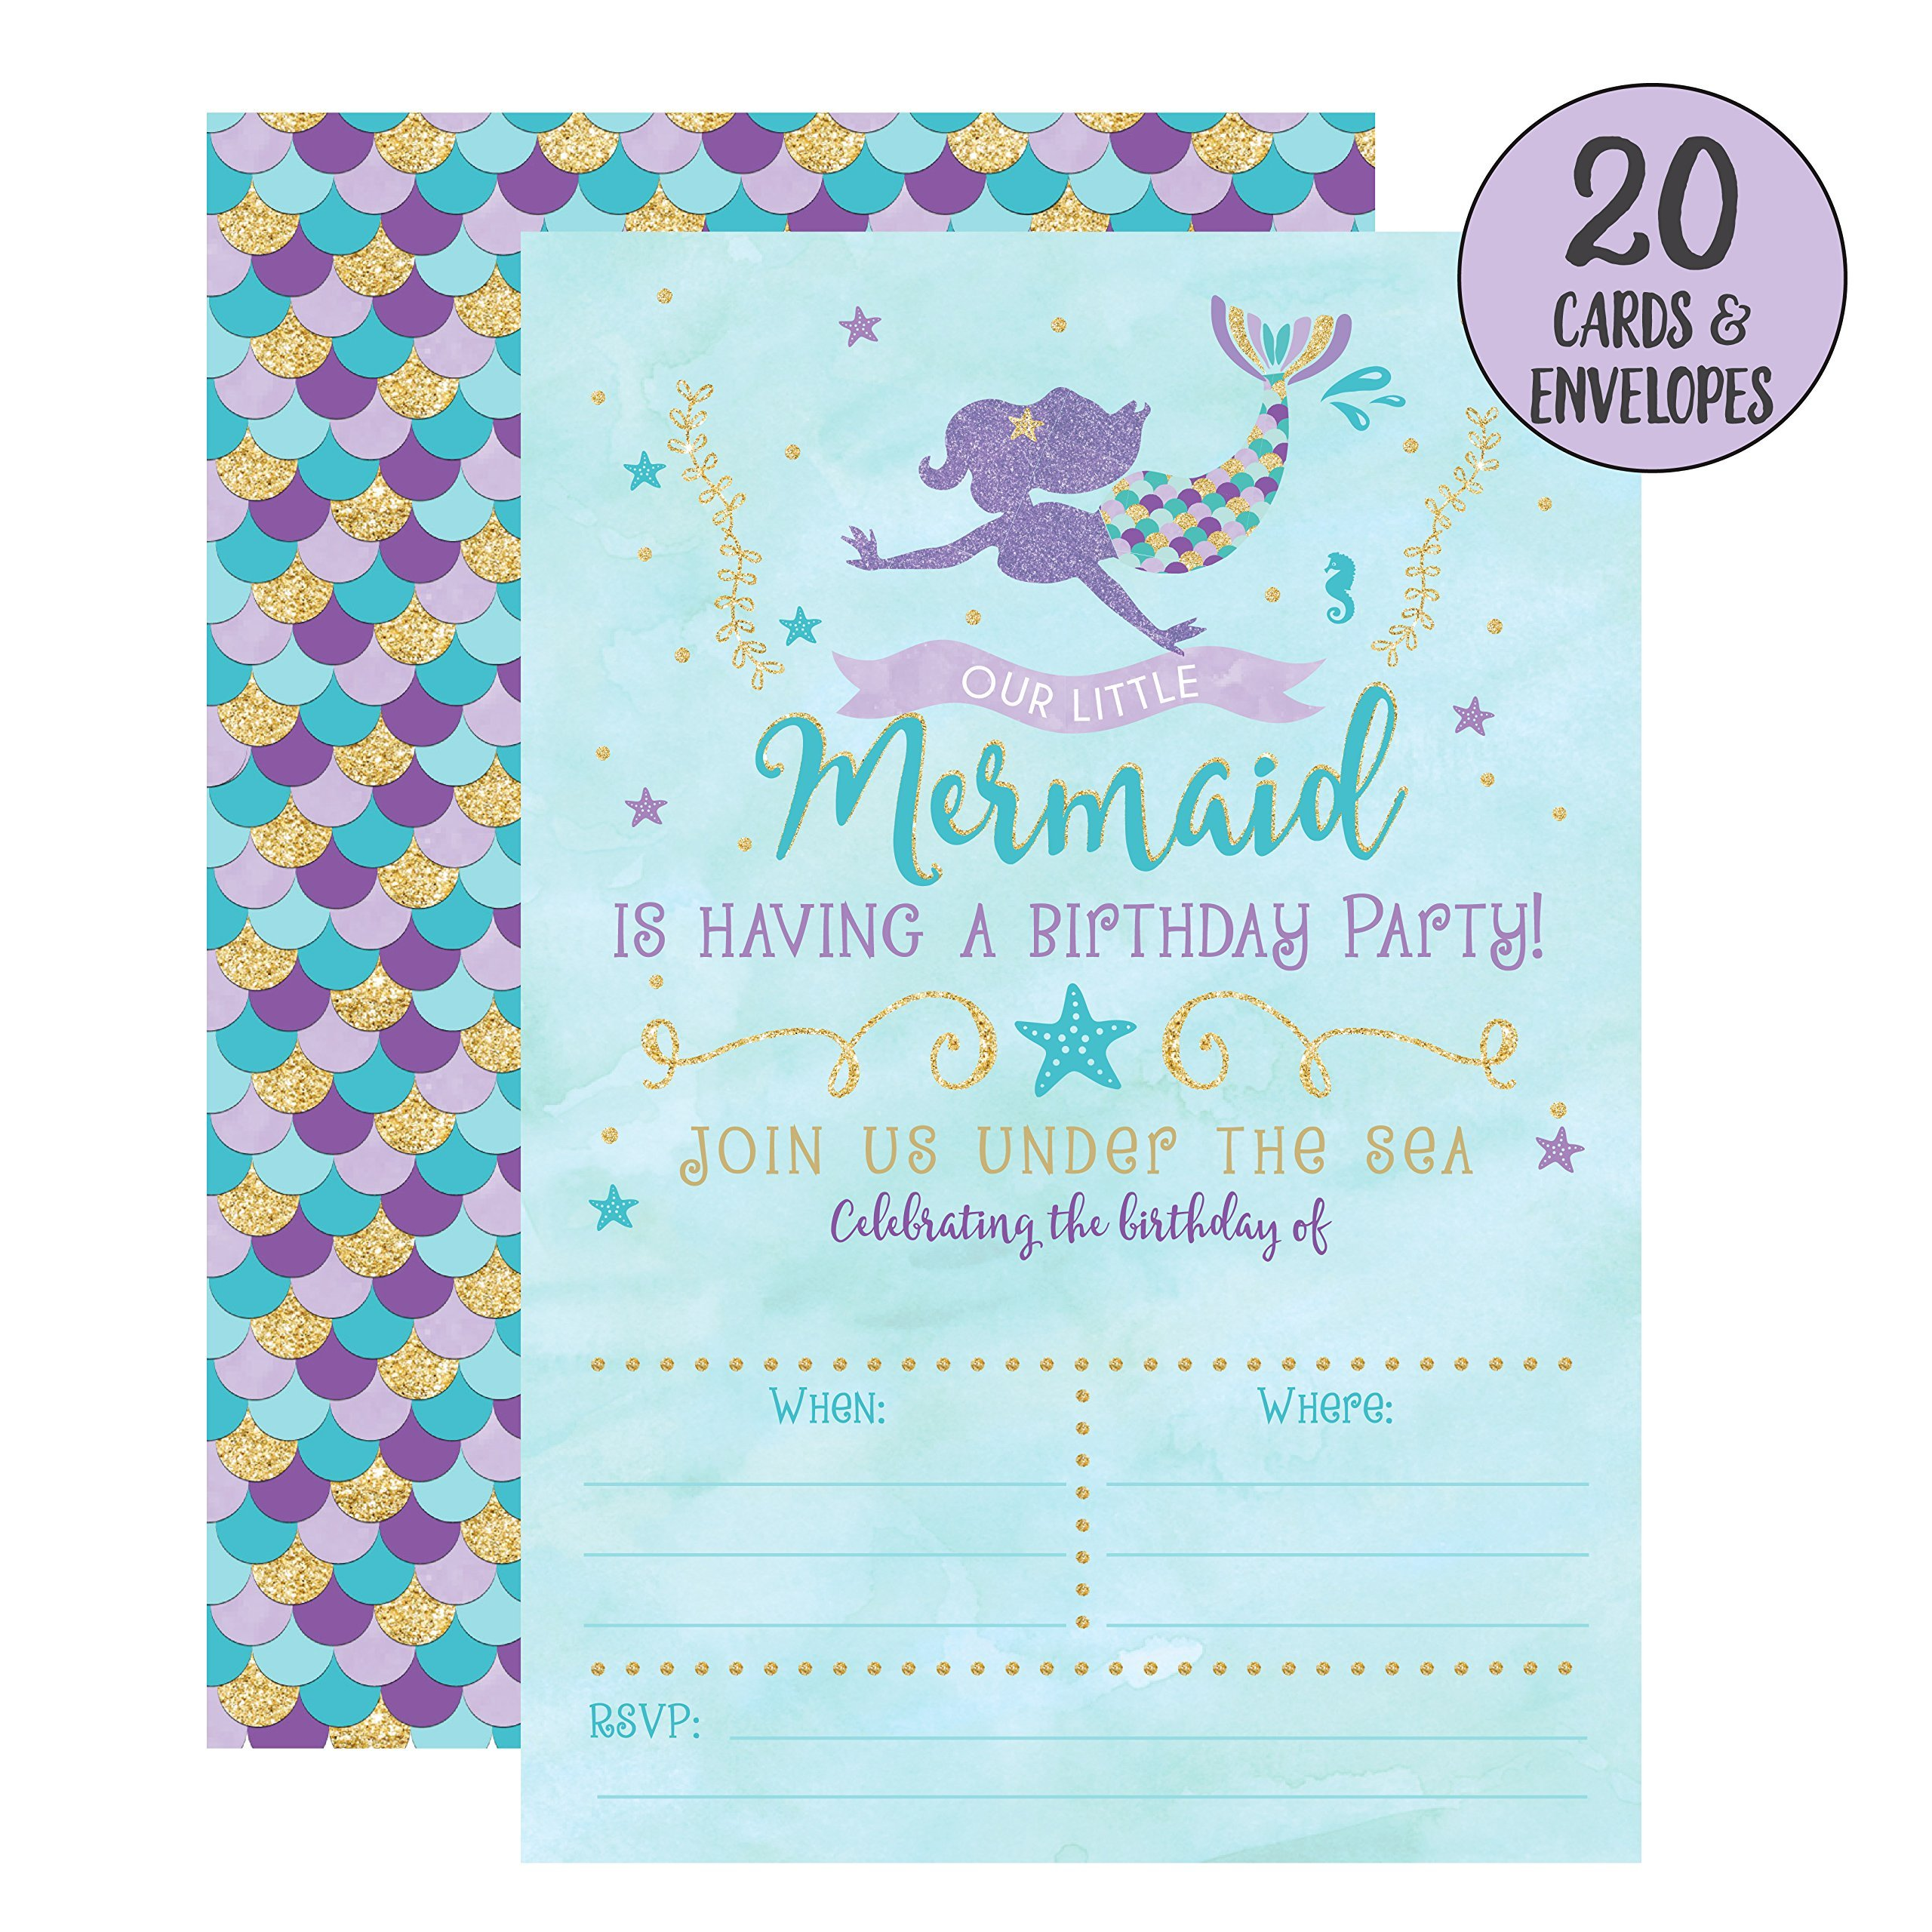 Mermaid Birthday Invitations, 20 Fill In Mermaid Party Invitations With Envelopes by Your Main Event Prints